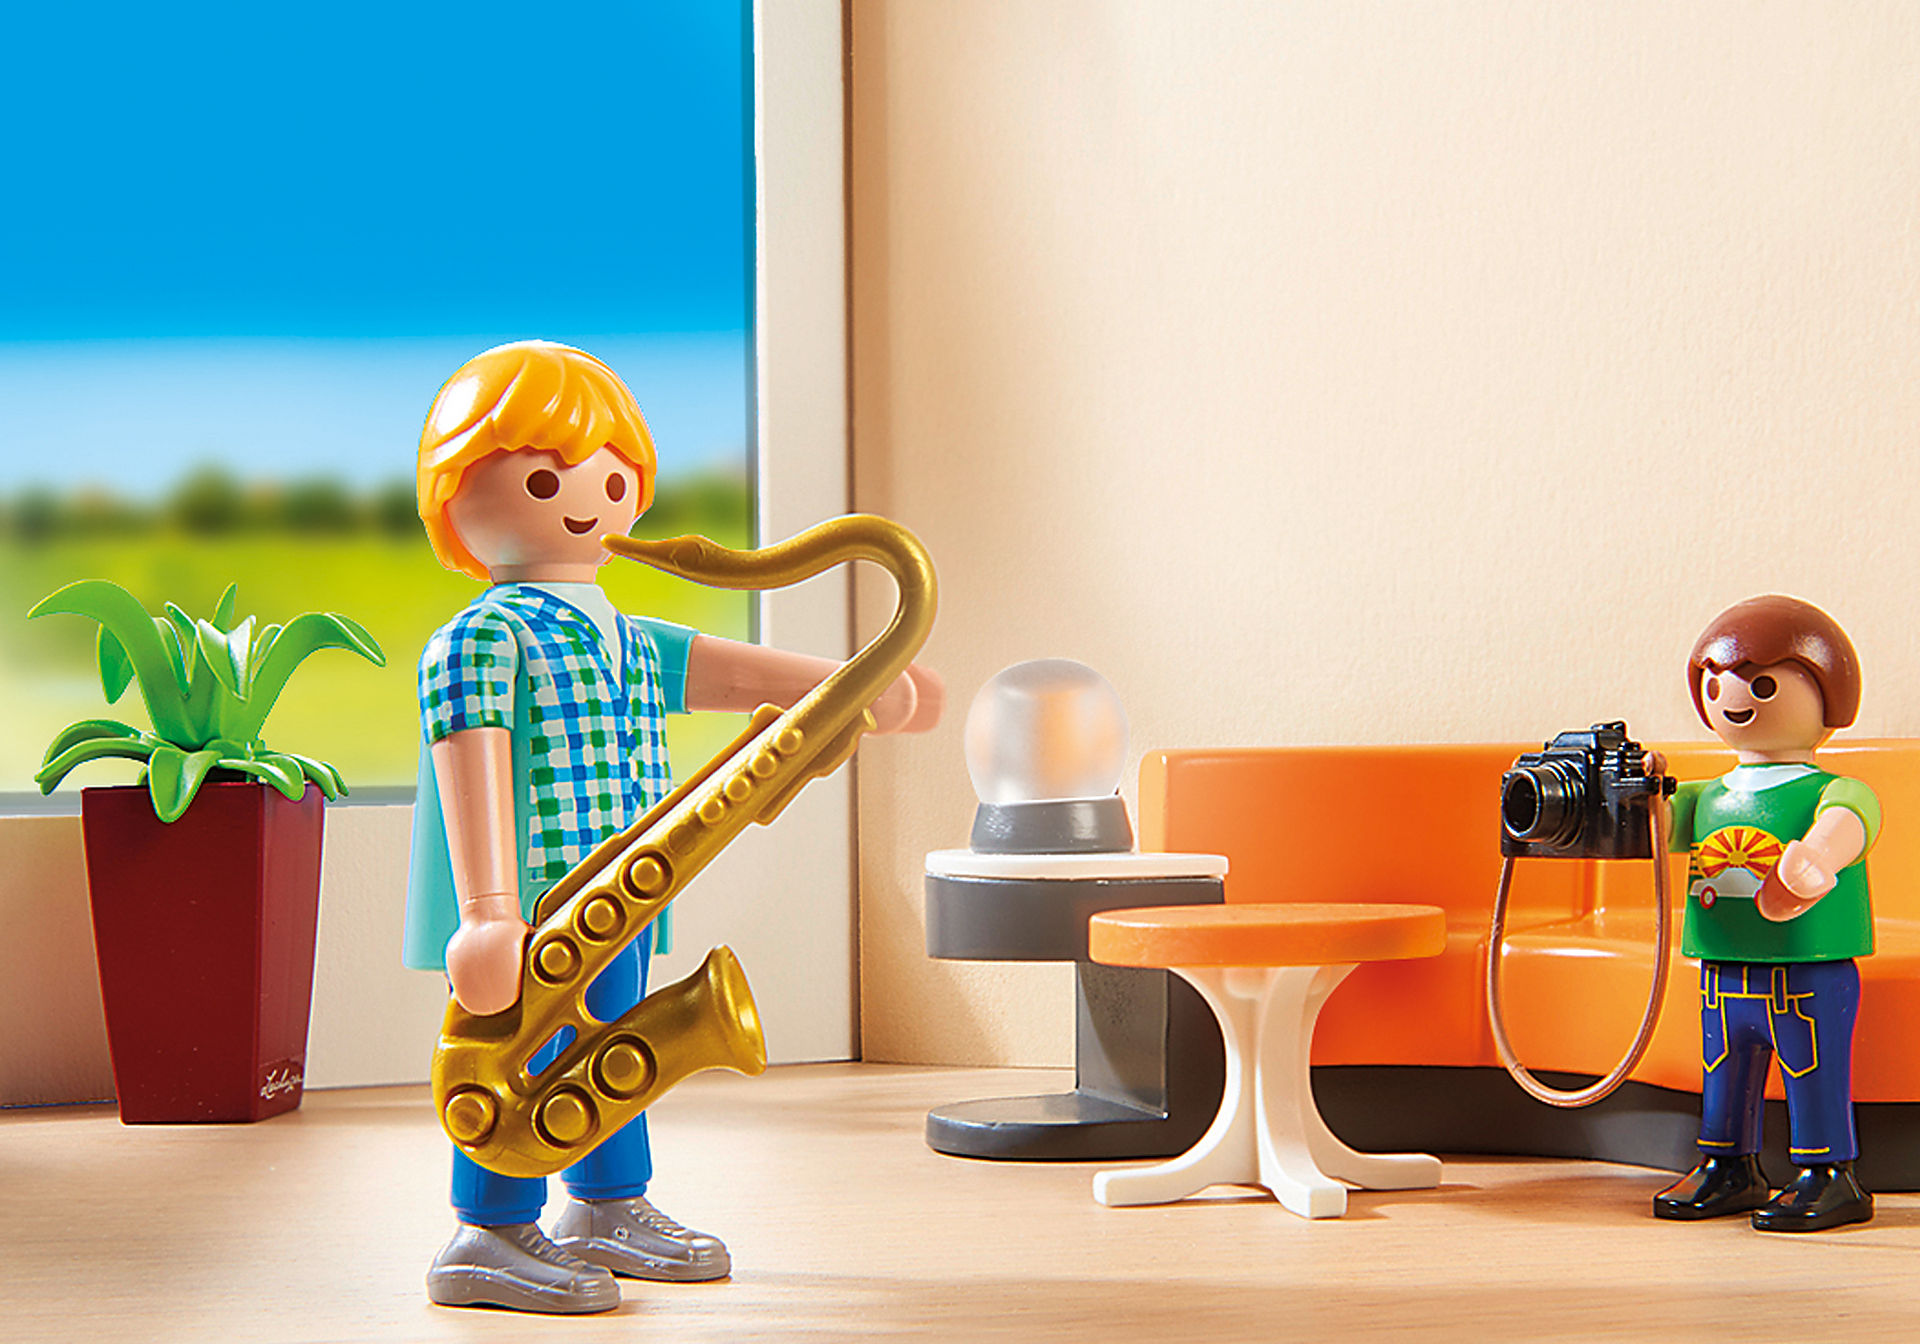 http://media.playmobil.com/i/playmobil/9267_product_extra1/Wohnzimmer